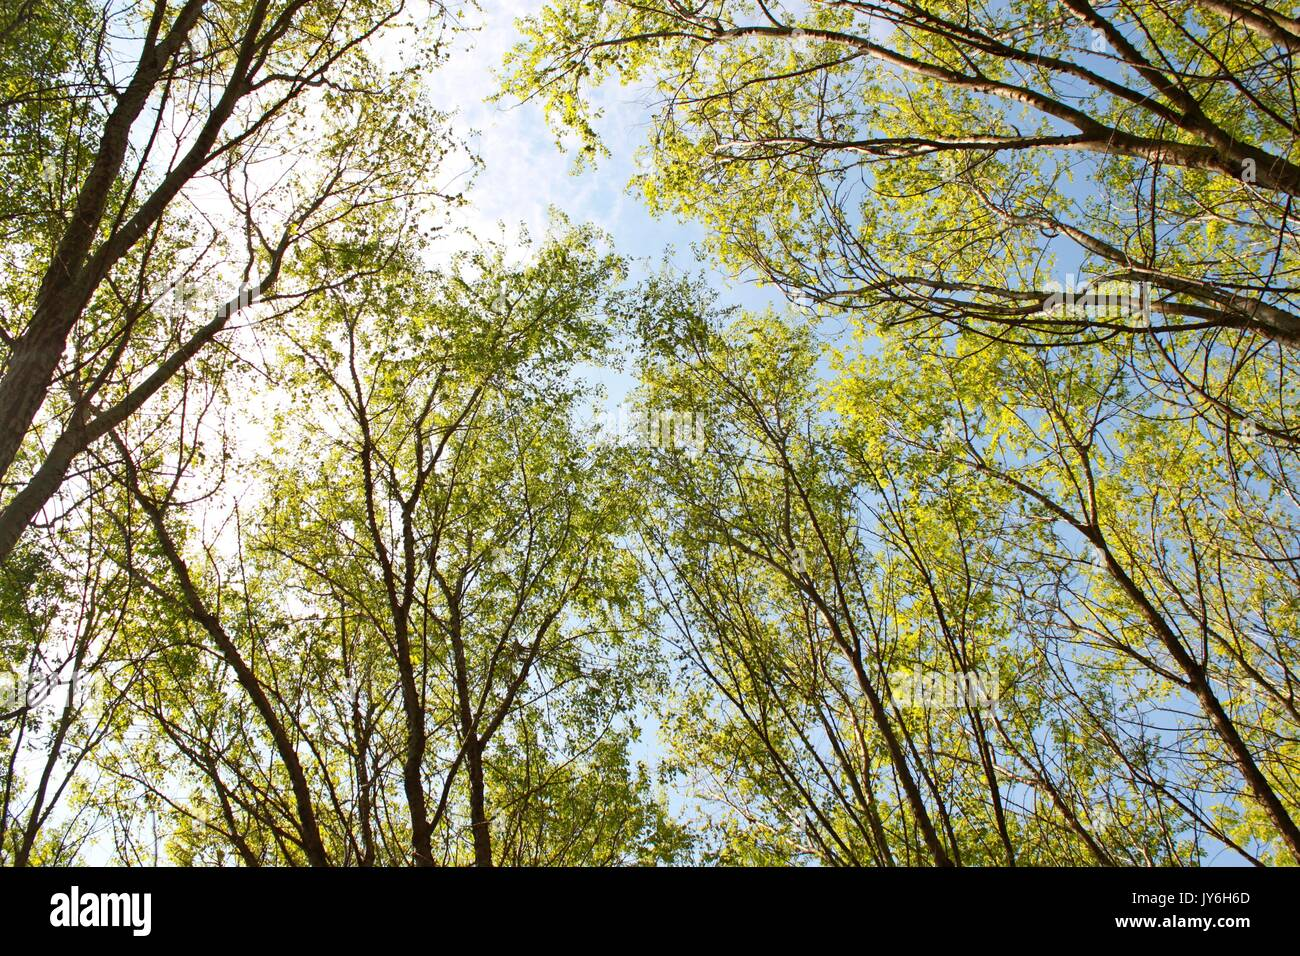 Treetops bellow view - Stock Image